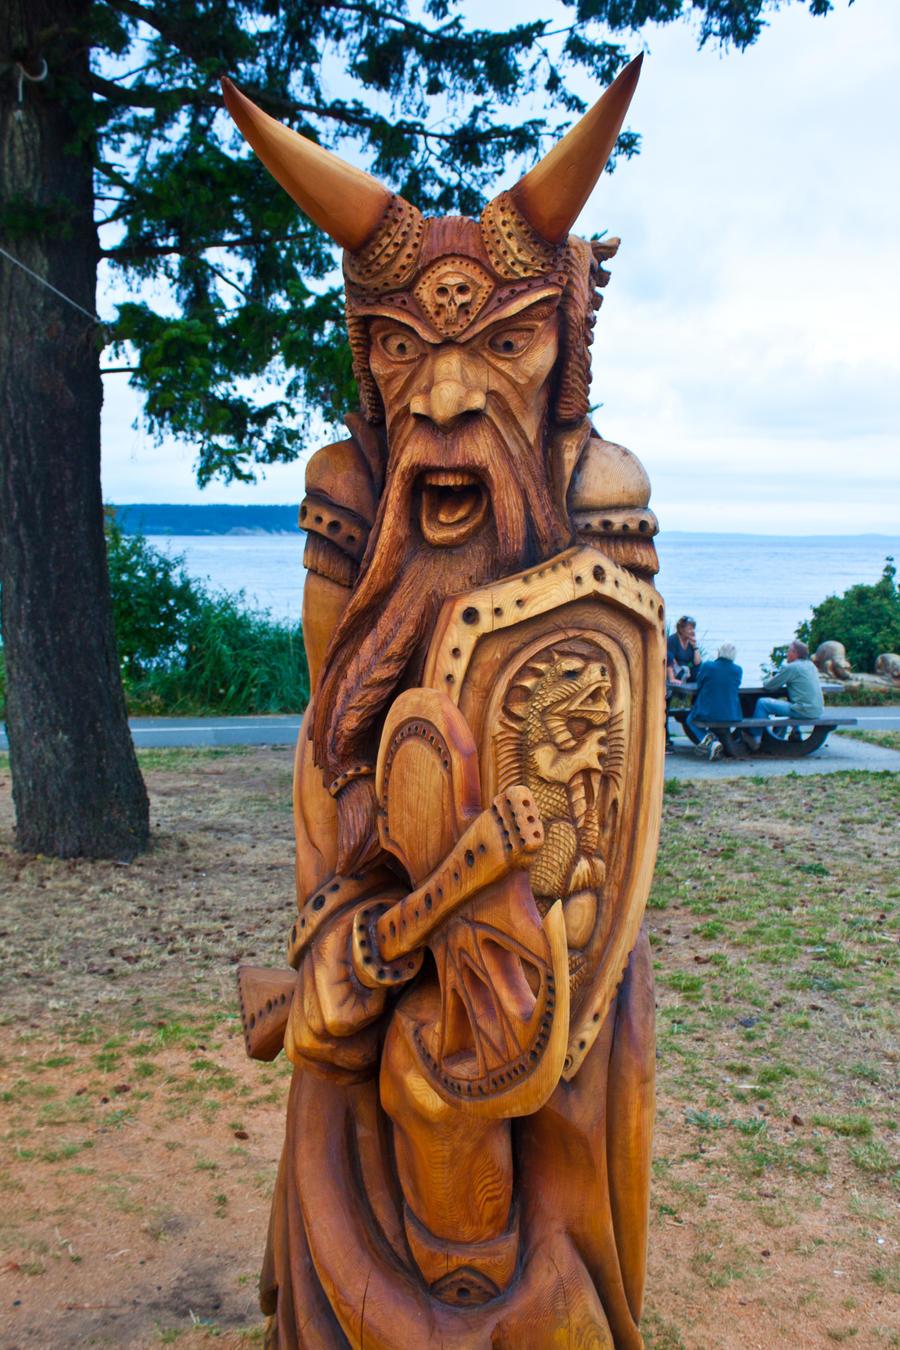 Viking carving by ackbad on deviantart